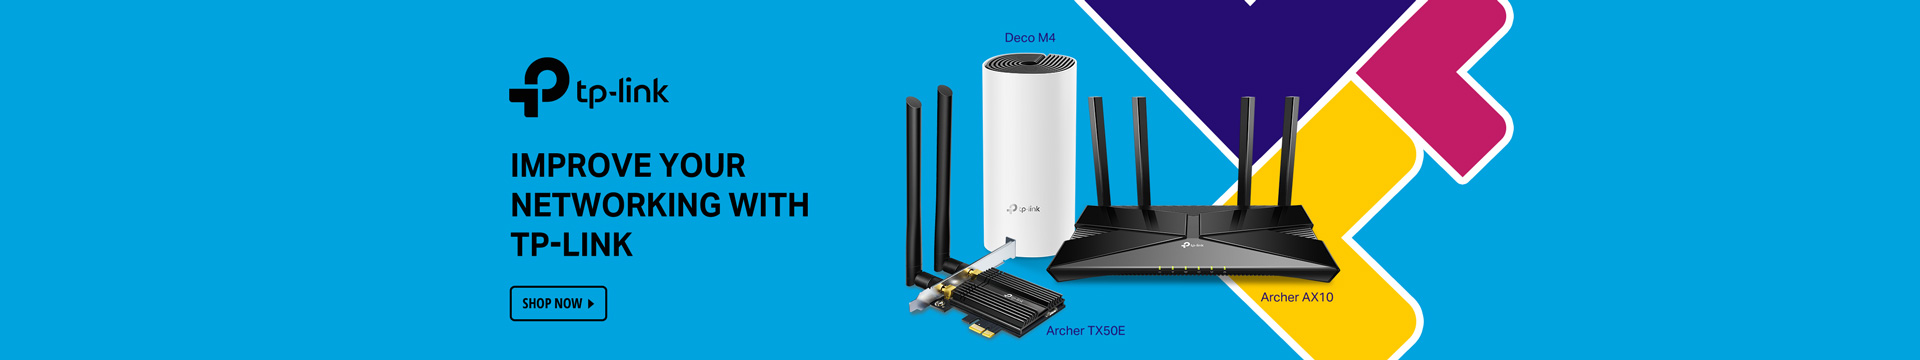 IMPROVE YOUR NETWORKING WITH TP-LINK